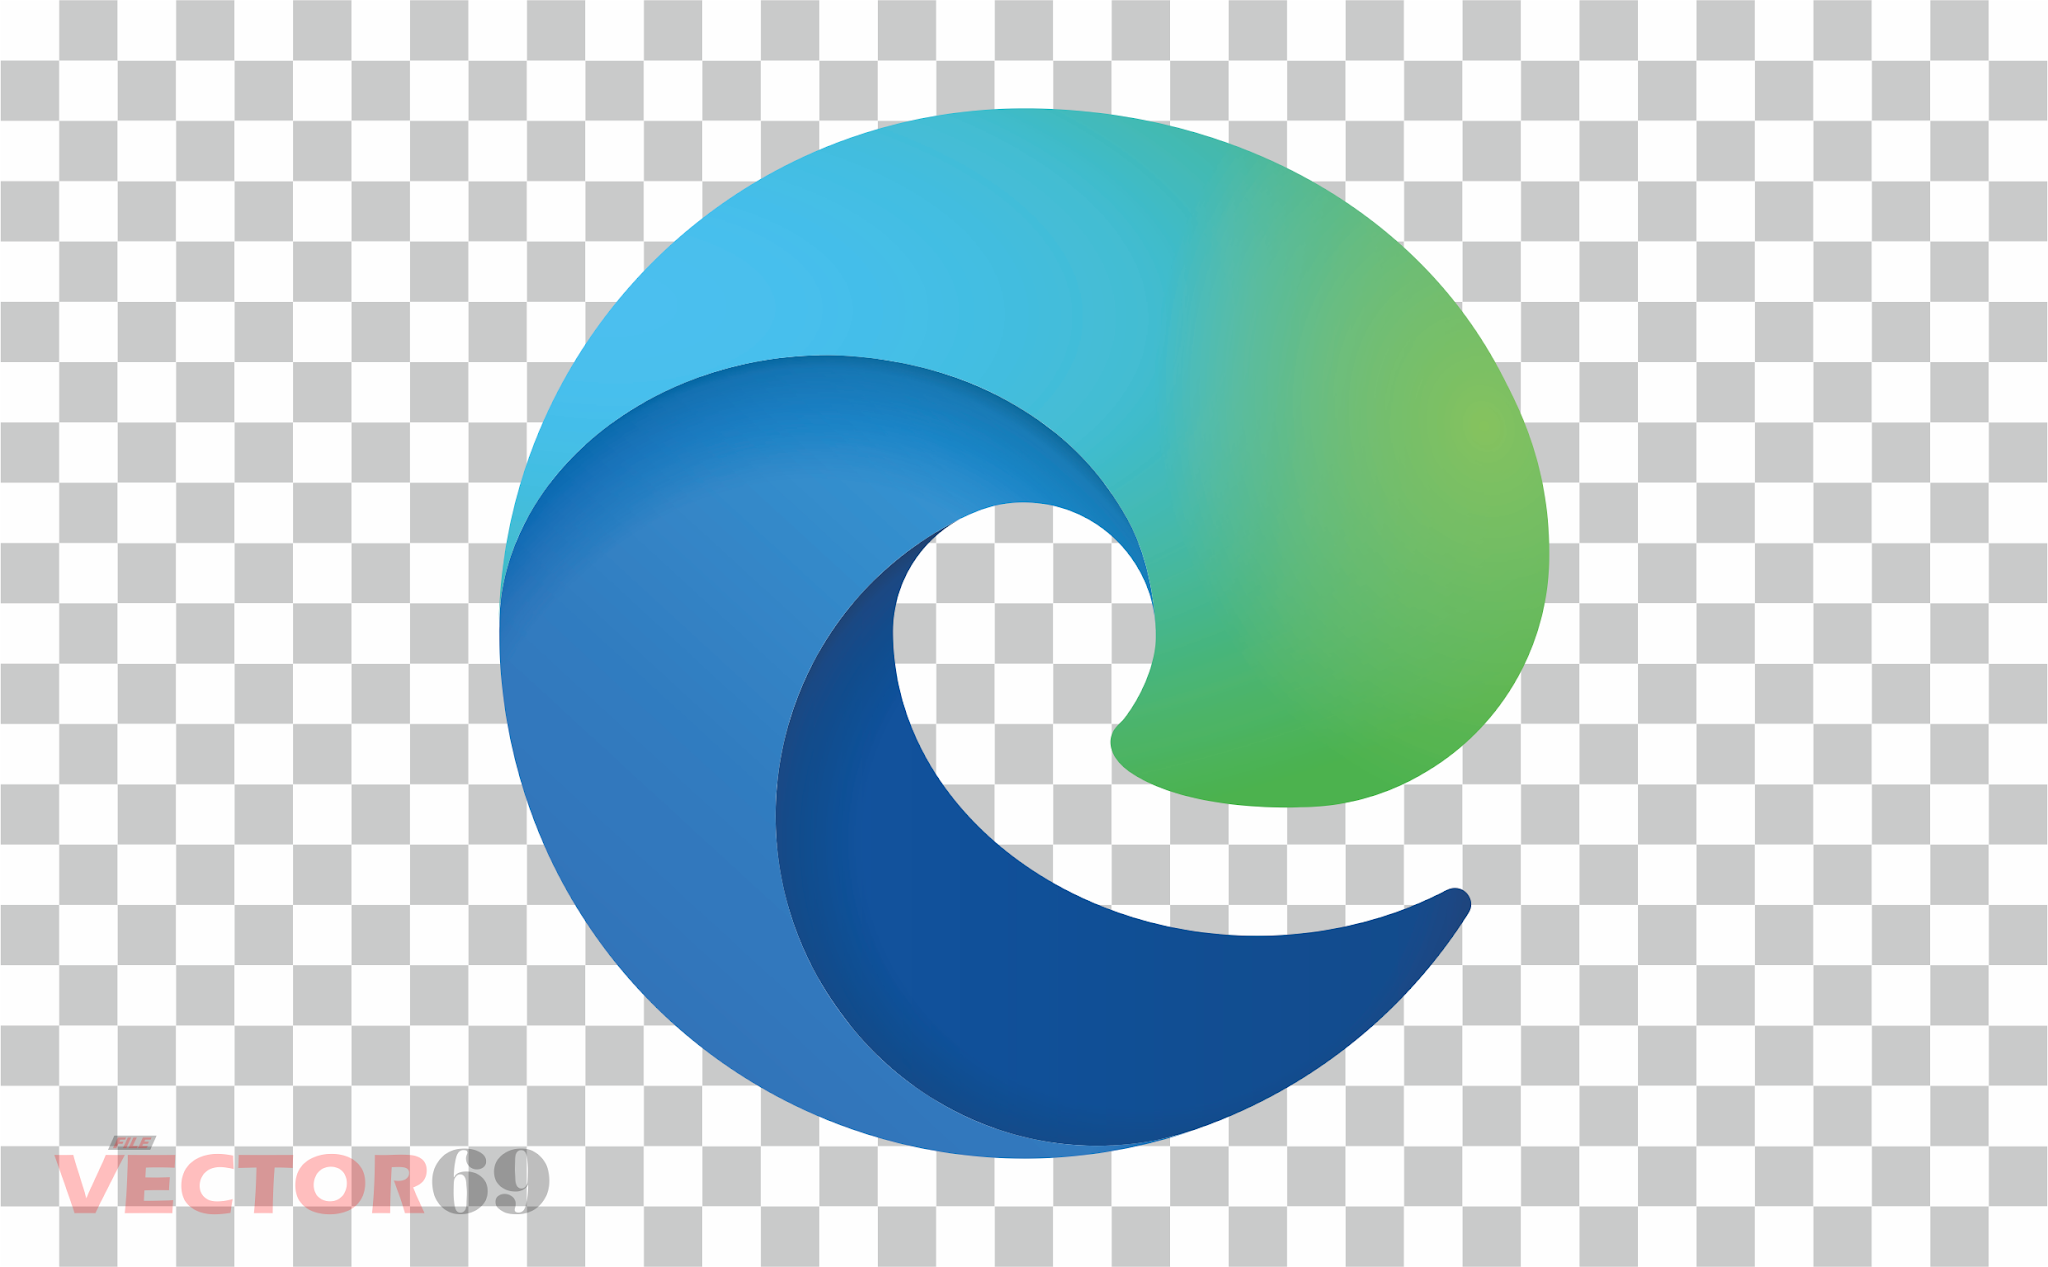 Microsoft Edge New 2020 Logo - Download Vector File PNG (Portable Network Graphics)